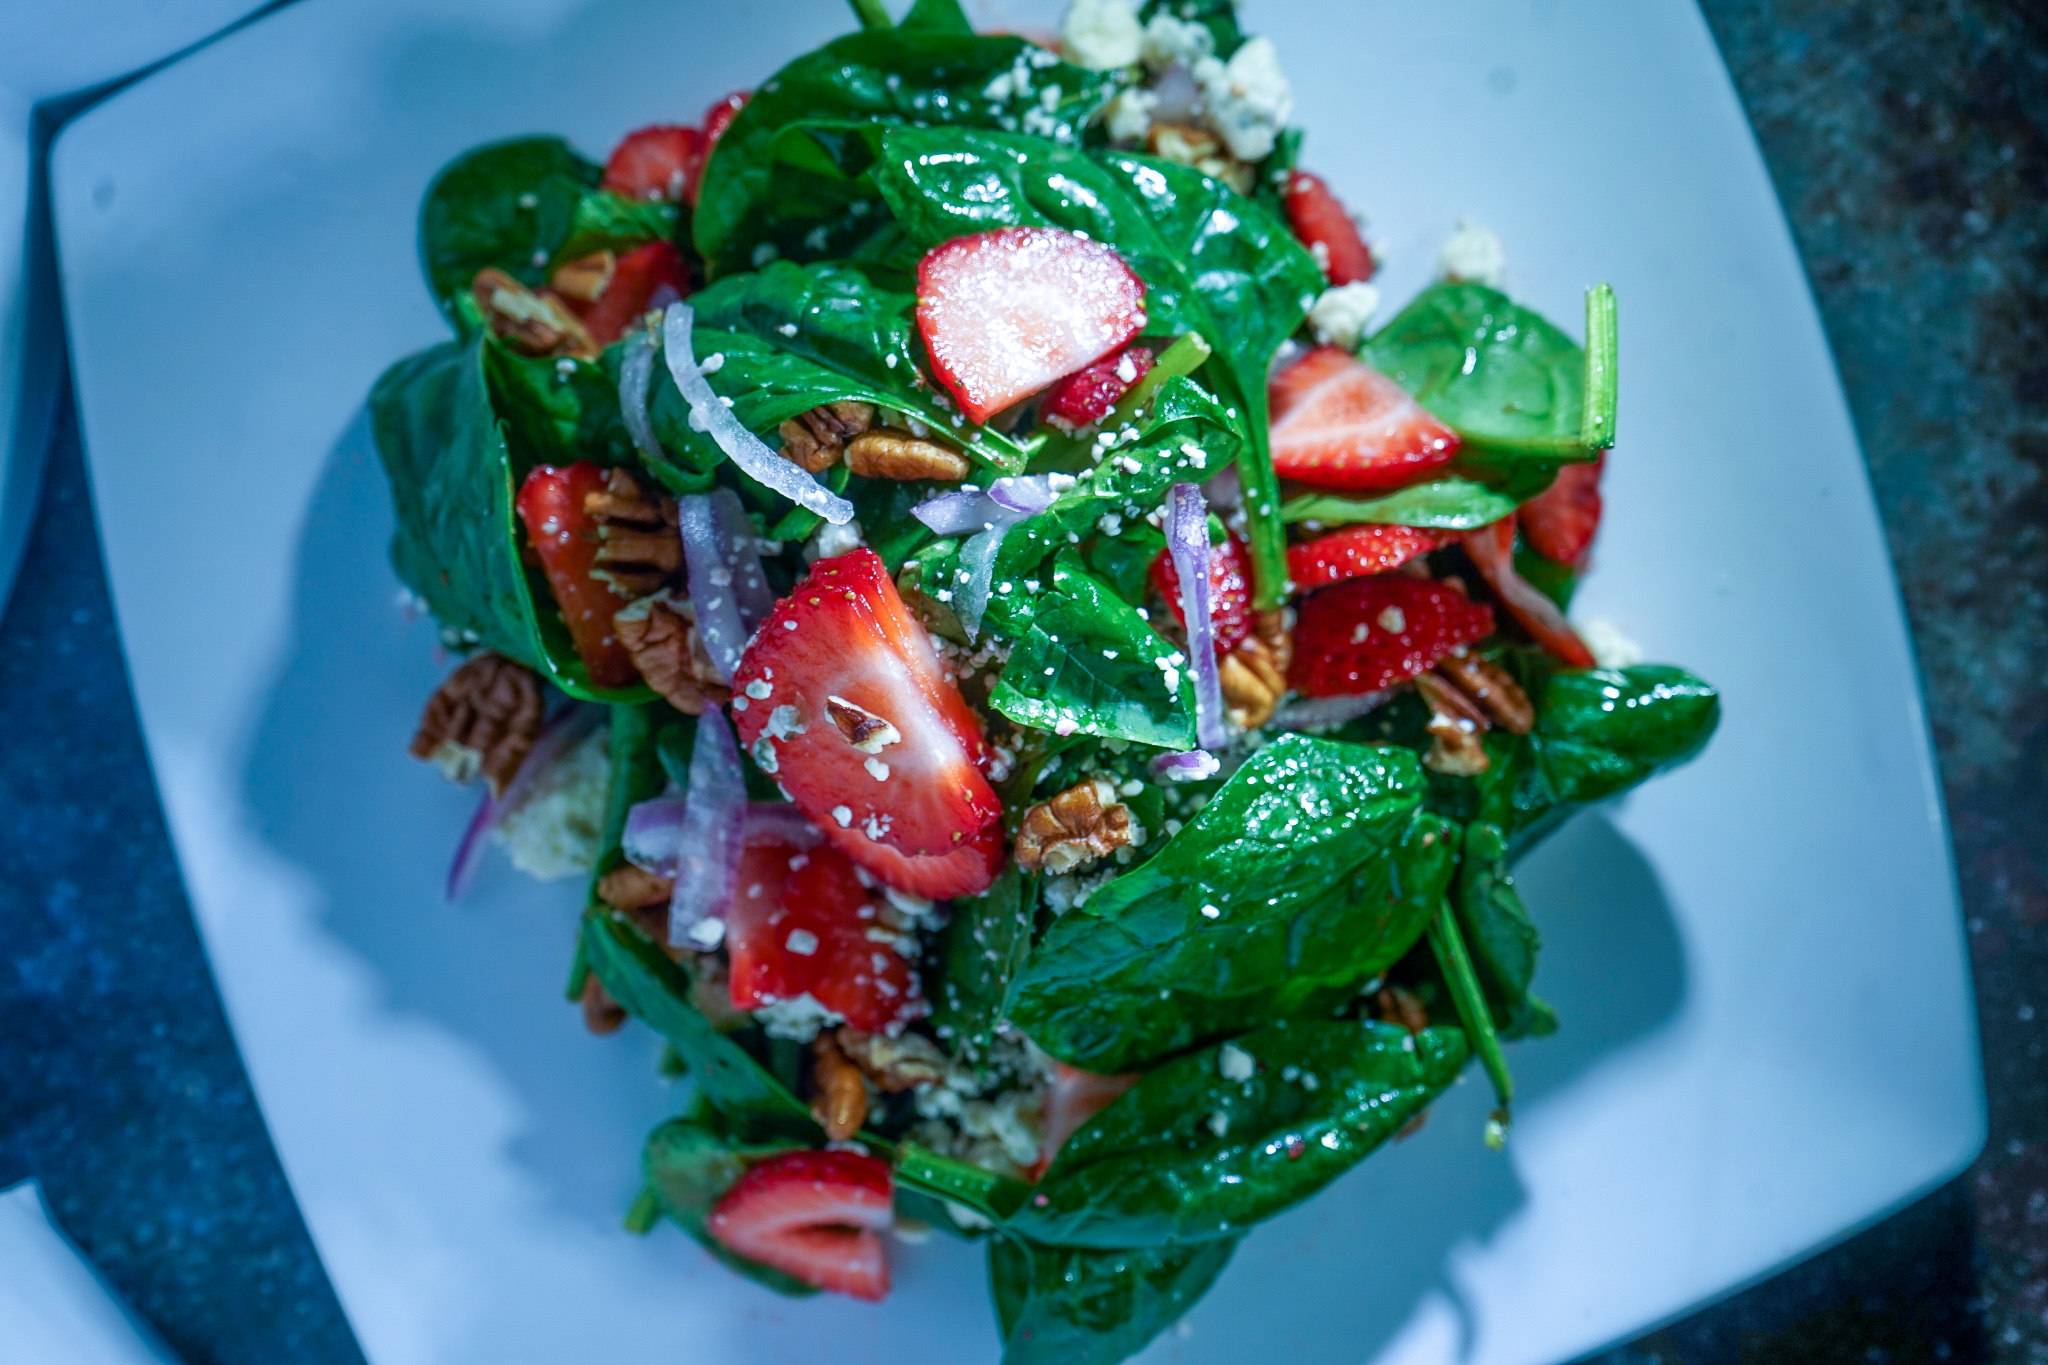 Spinach Strawberry Salad. candied pecans. red onions. strawberries. blue cheese. raspberry vinaigrette.